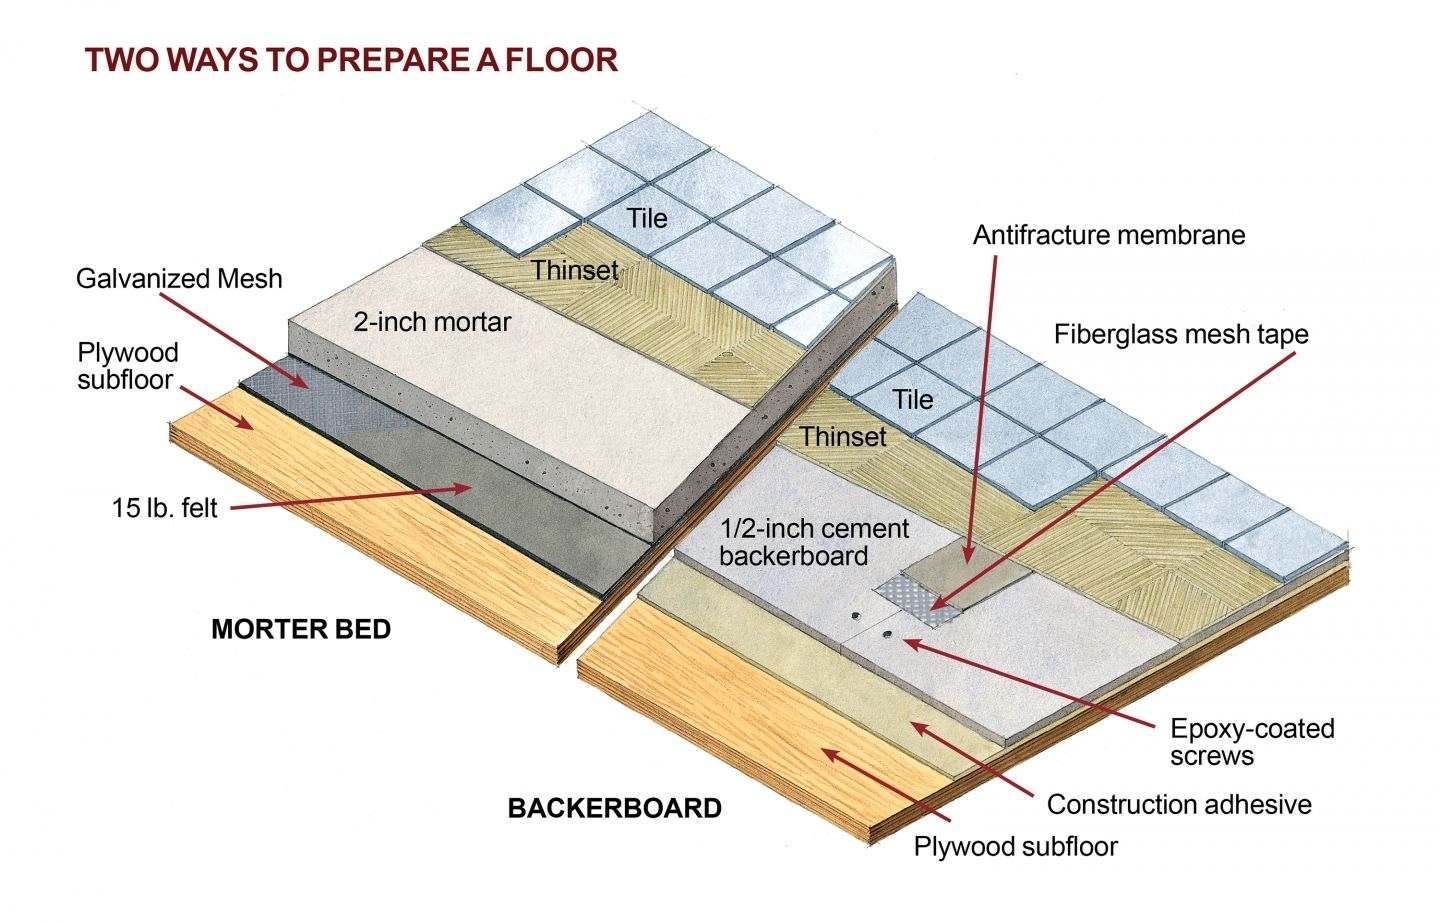 How to Tile a Floor Installing tile floor, Flooring